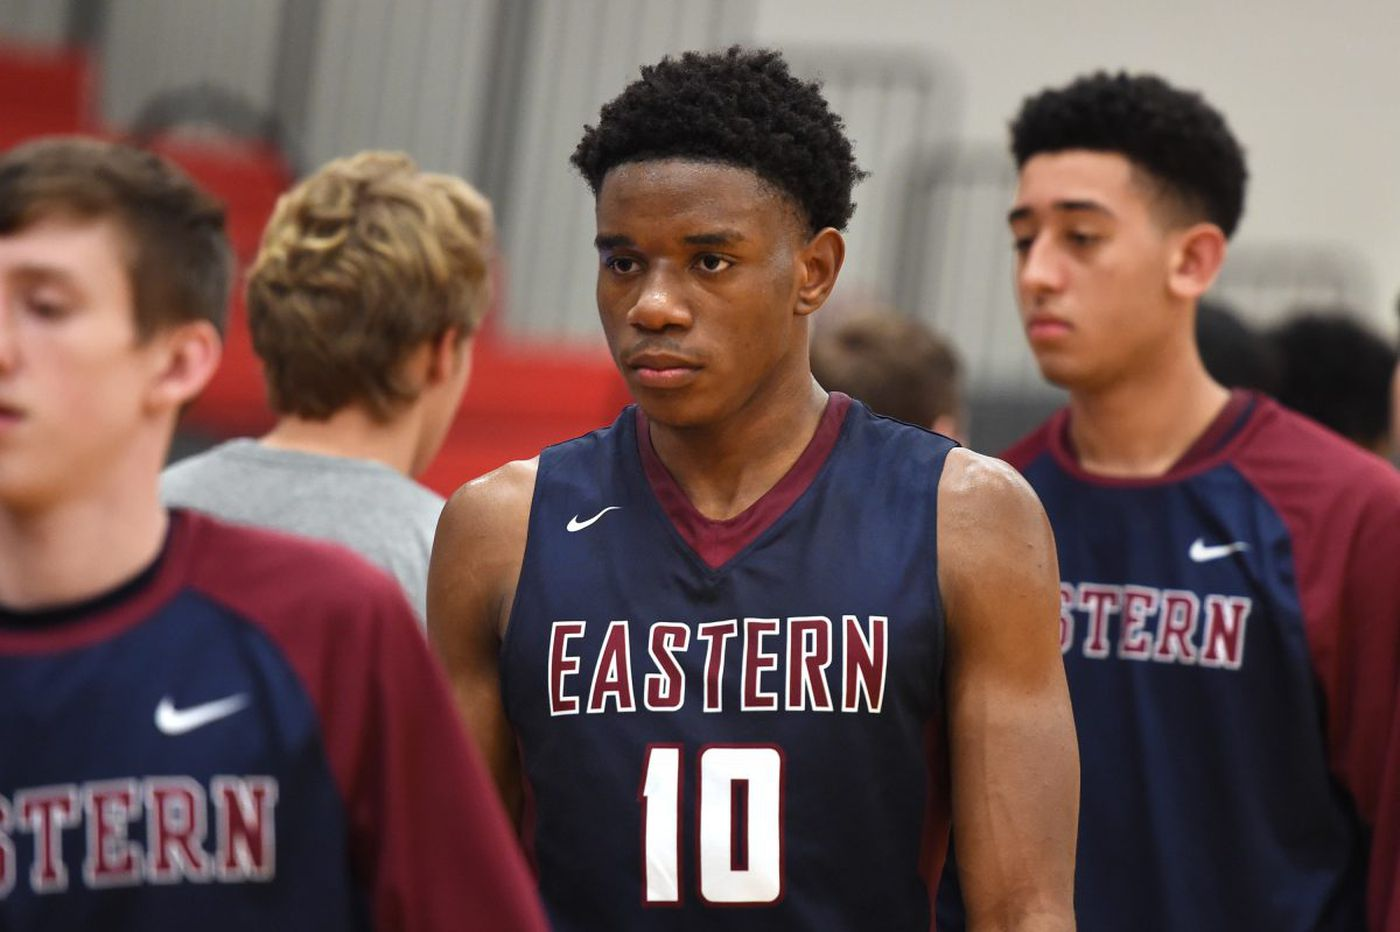 Thursday's South Jersey roundup: Eastern's Matt Cotton scores 30 en route to milestone